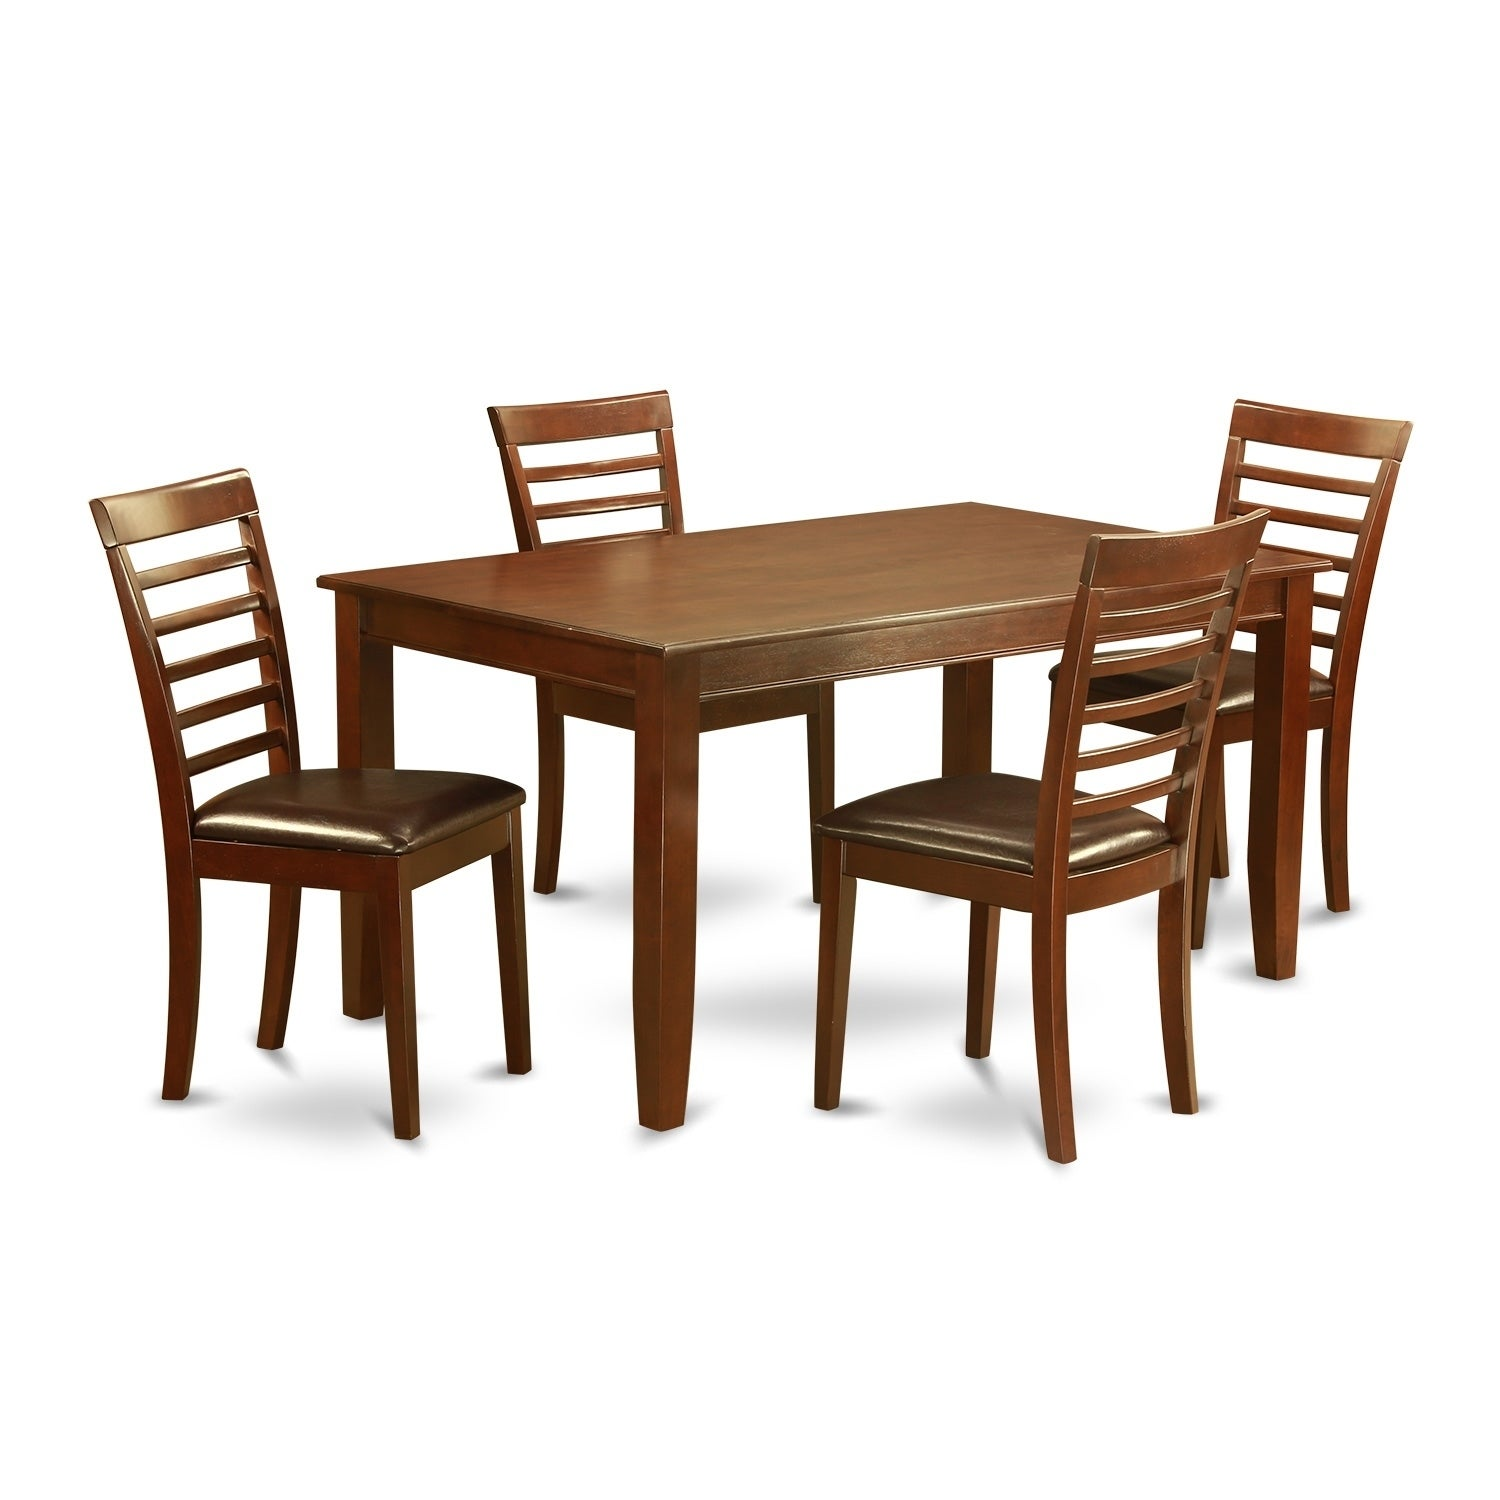 DUML5-MAH 5 PC Table set for 4 - Dining Table with 4 Dini...